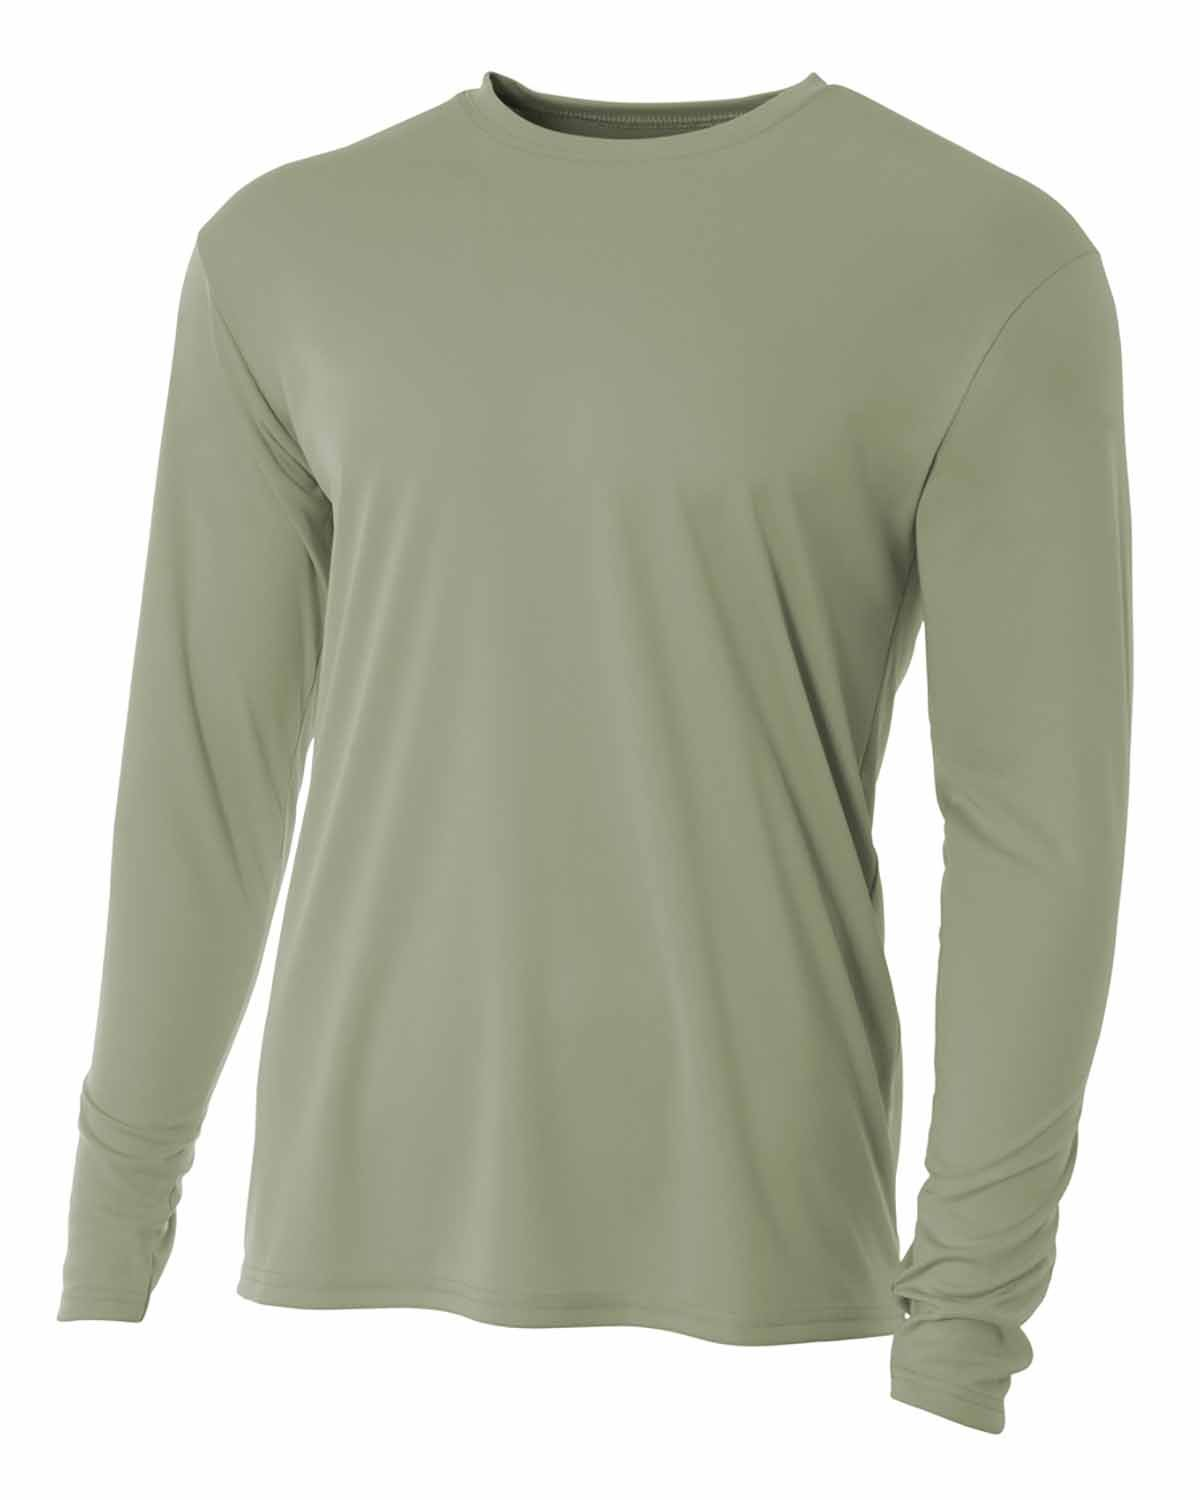 A4 Youth Long Sleeve Cooling Performance Crew Shirt OLIVE